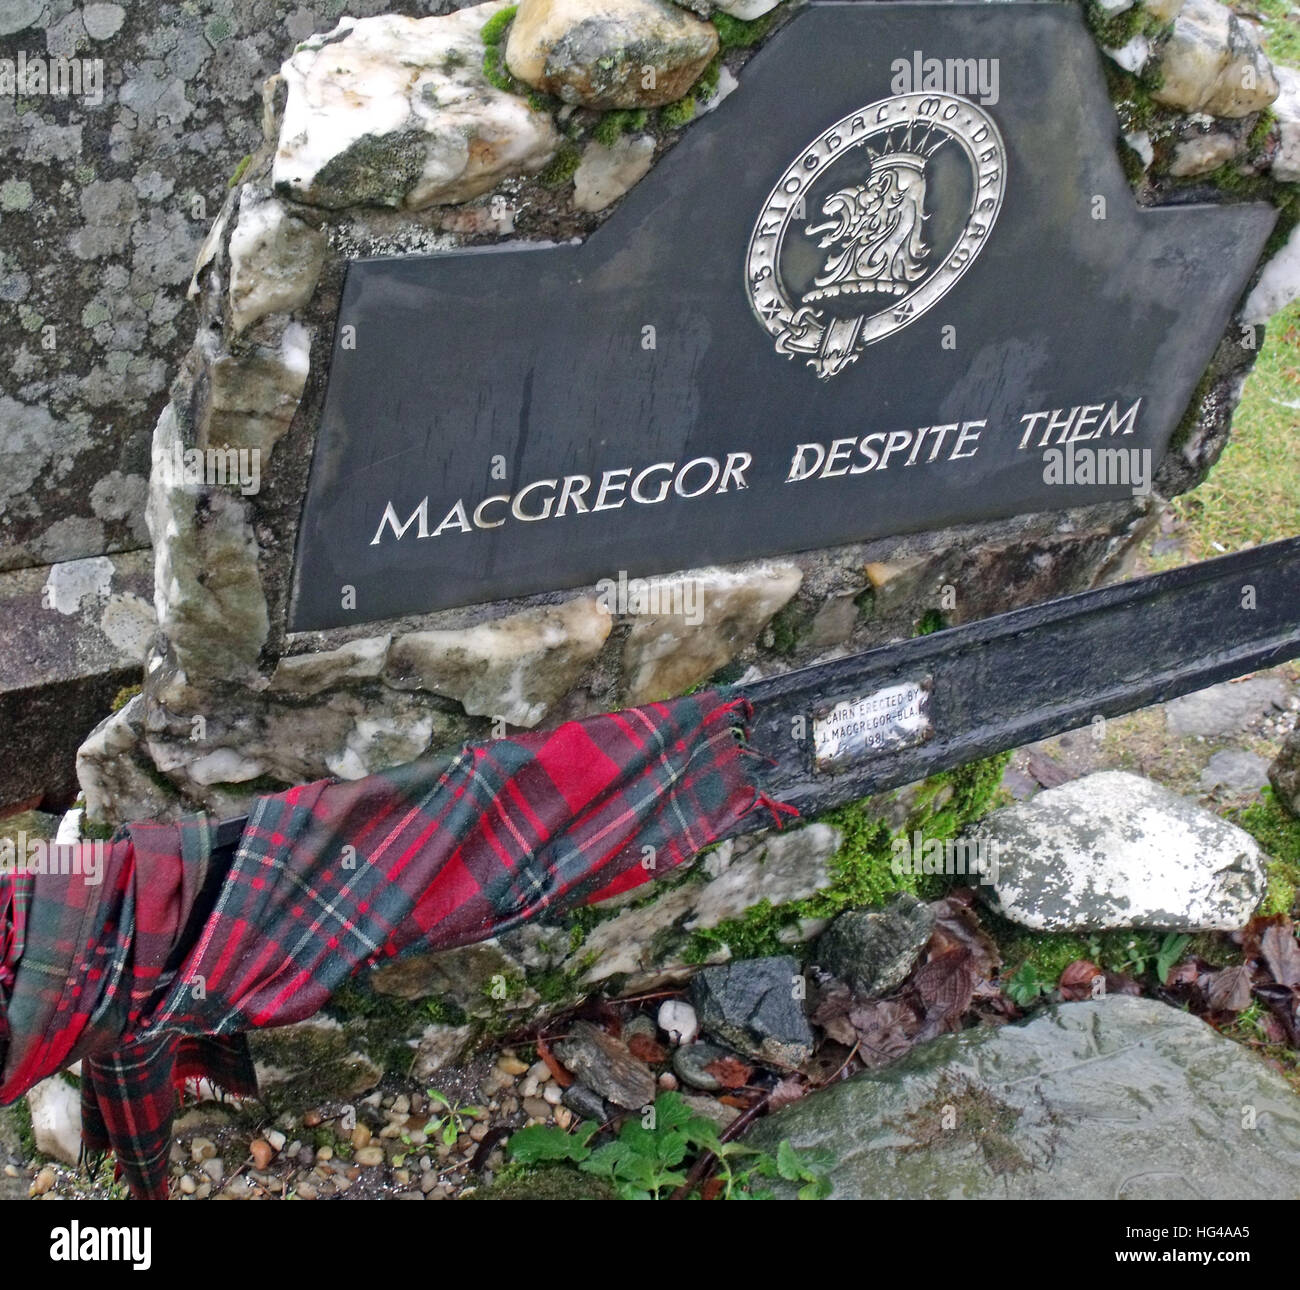 Nationalism,Roy,MacGregor,red,hair,haired,hero,martyr,outlaw,Balquidder,Inverlochlarig,Beg,graveyard,burial,buried,tomb,Robert,MacGregor,slate,MacGregor,Despite,Them,tarten,tartan,crest,Scottish Nationalism,Rob Roy,red hair,Scottish Outlaw,MacGregor Despite Them,GoTonySmith,@HotpixUK,Tony,Smith,UK,GB,Great,Britain,United,Kingdom,Scottish,Scots,British,Scotland,problem,with,problem with,issue with,Raibeart,Ruadh,MacGriogair,tourist,tour,tourism,attraction,tourist attraction,travel,famous,grave,yard,tombstone,stone,sign,YES,Stirling,Sterlingshire,rural,countryside,Scottish,SNP,independance party,independence,indyref,referendum,2nd,second,Buy Pictures of,Buy Images Of,Images of,Stock Images,Tony Smith,United Kingdom,Great Britain,British Isles,Raibeart Ruadh MacGriogair,Robert MacGregor,Scottish Countryside